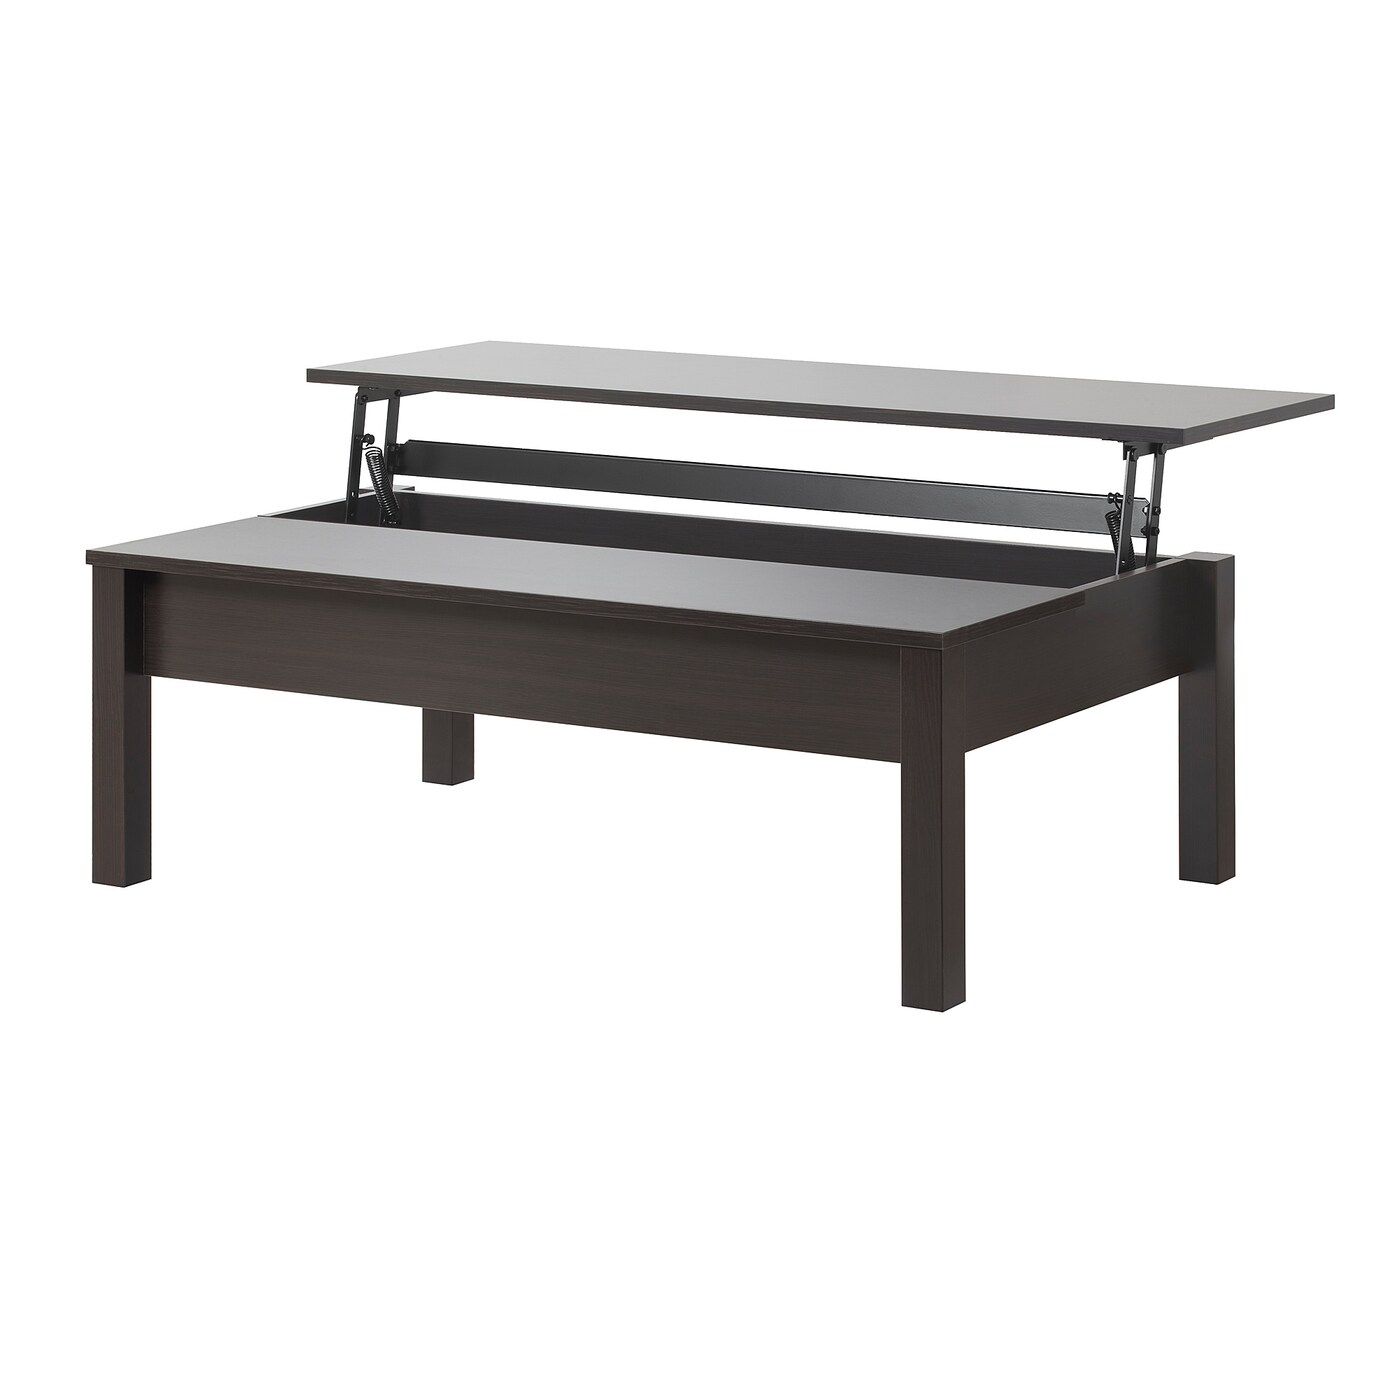 trulstorp coffee table black brown 45 1 4x27 1 2